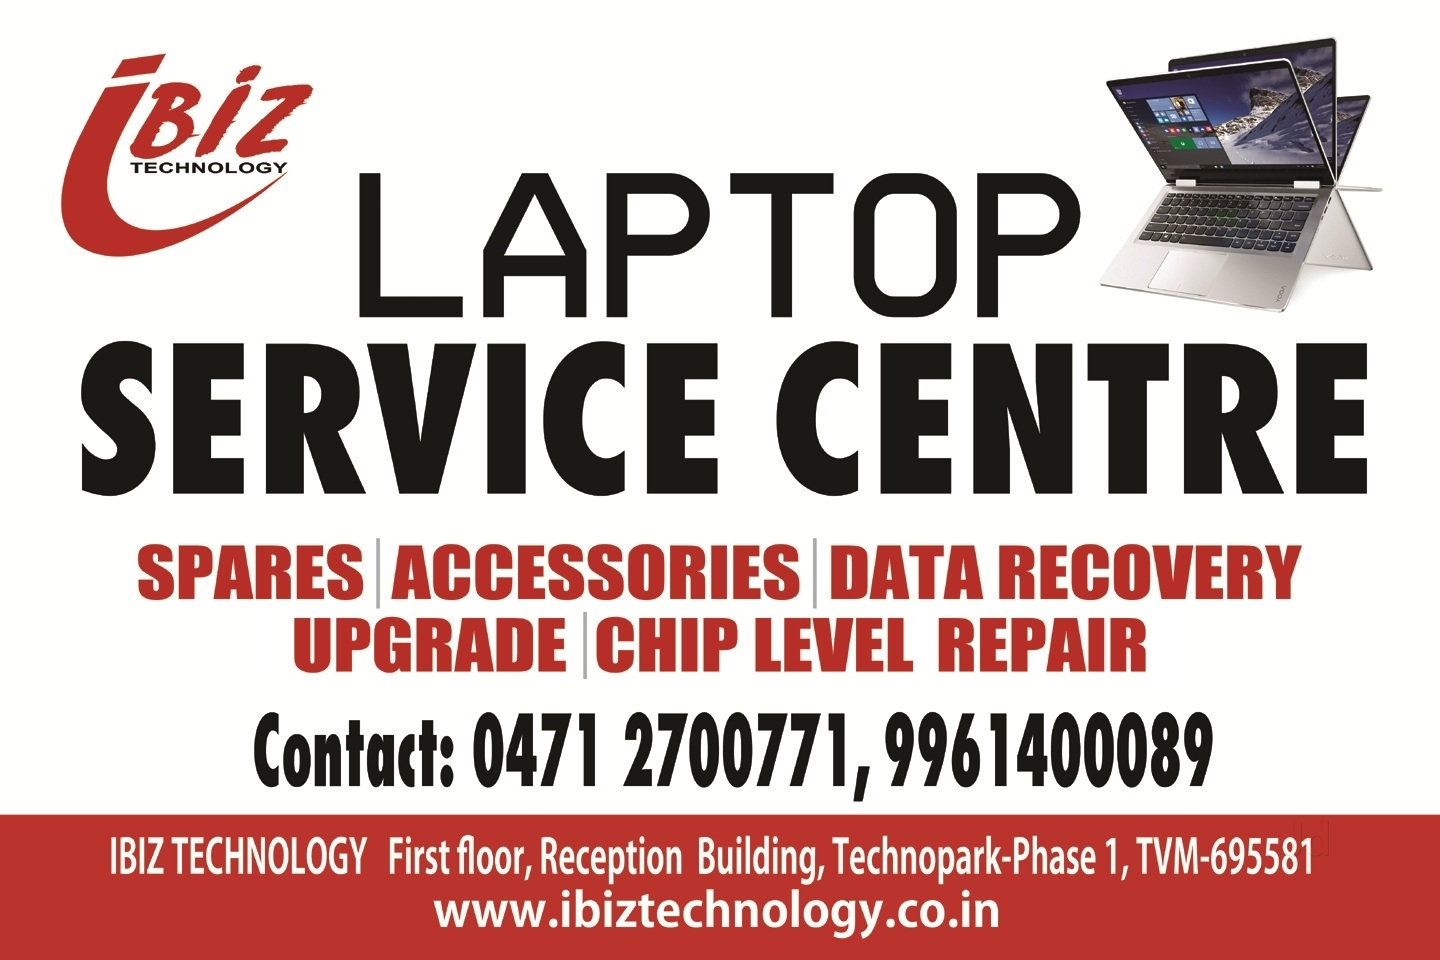 Laptop Service center IBIZ TECHNOLOGY